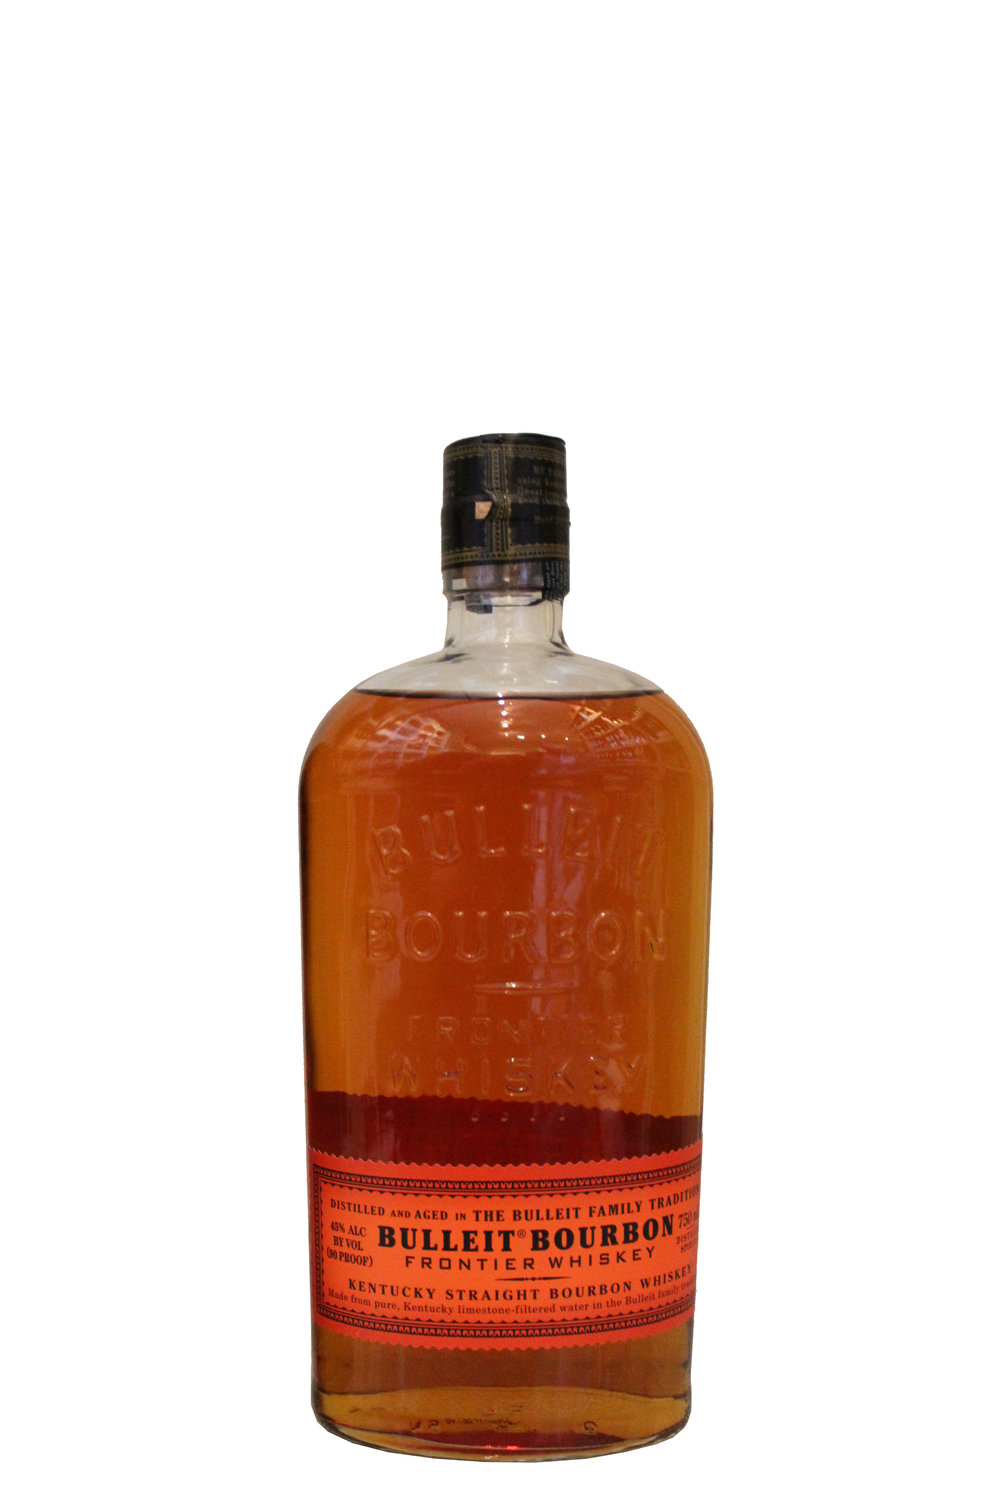 Small-Batch Bourbon, Bulleit Bourbon, Kentucky